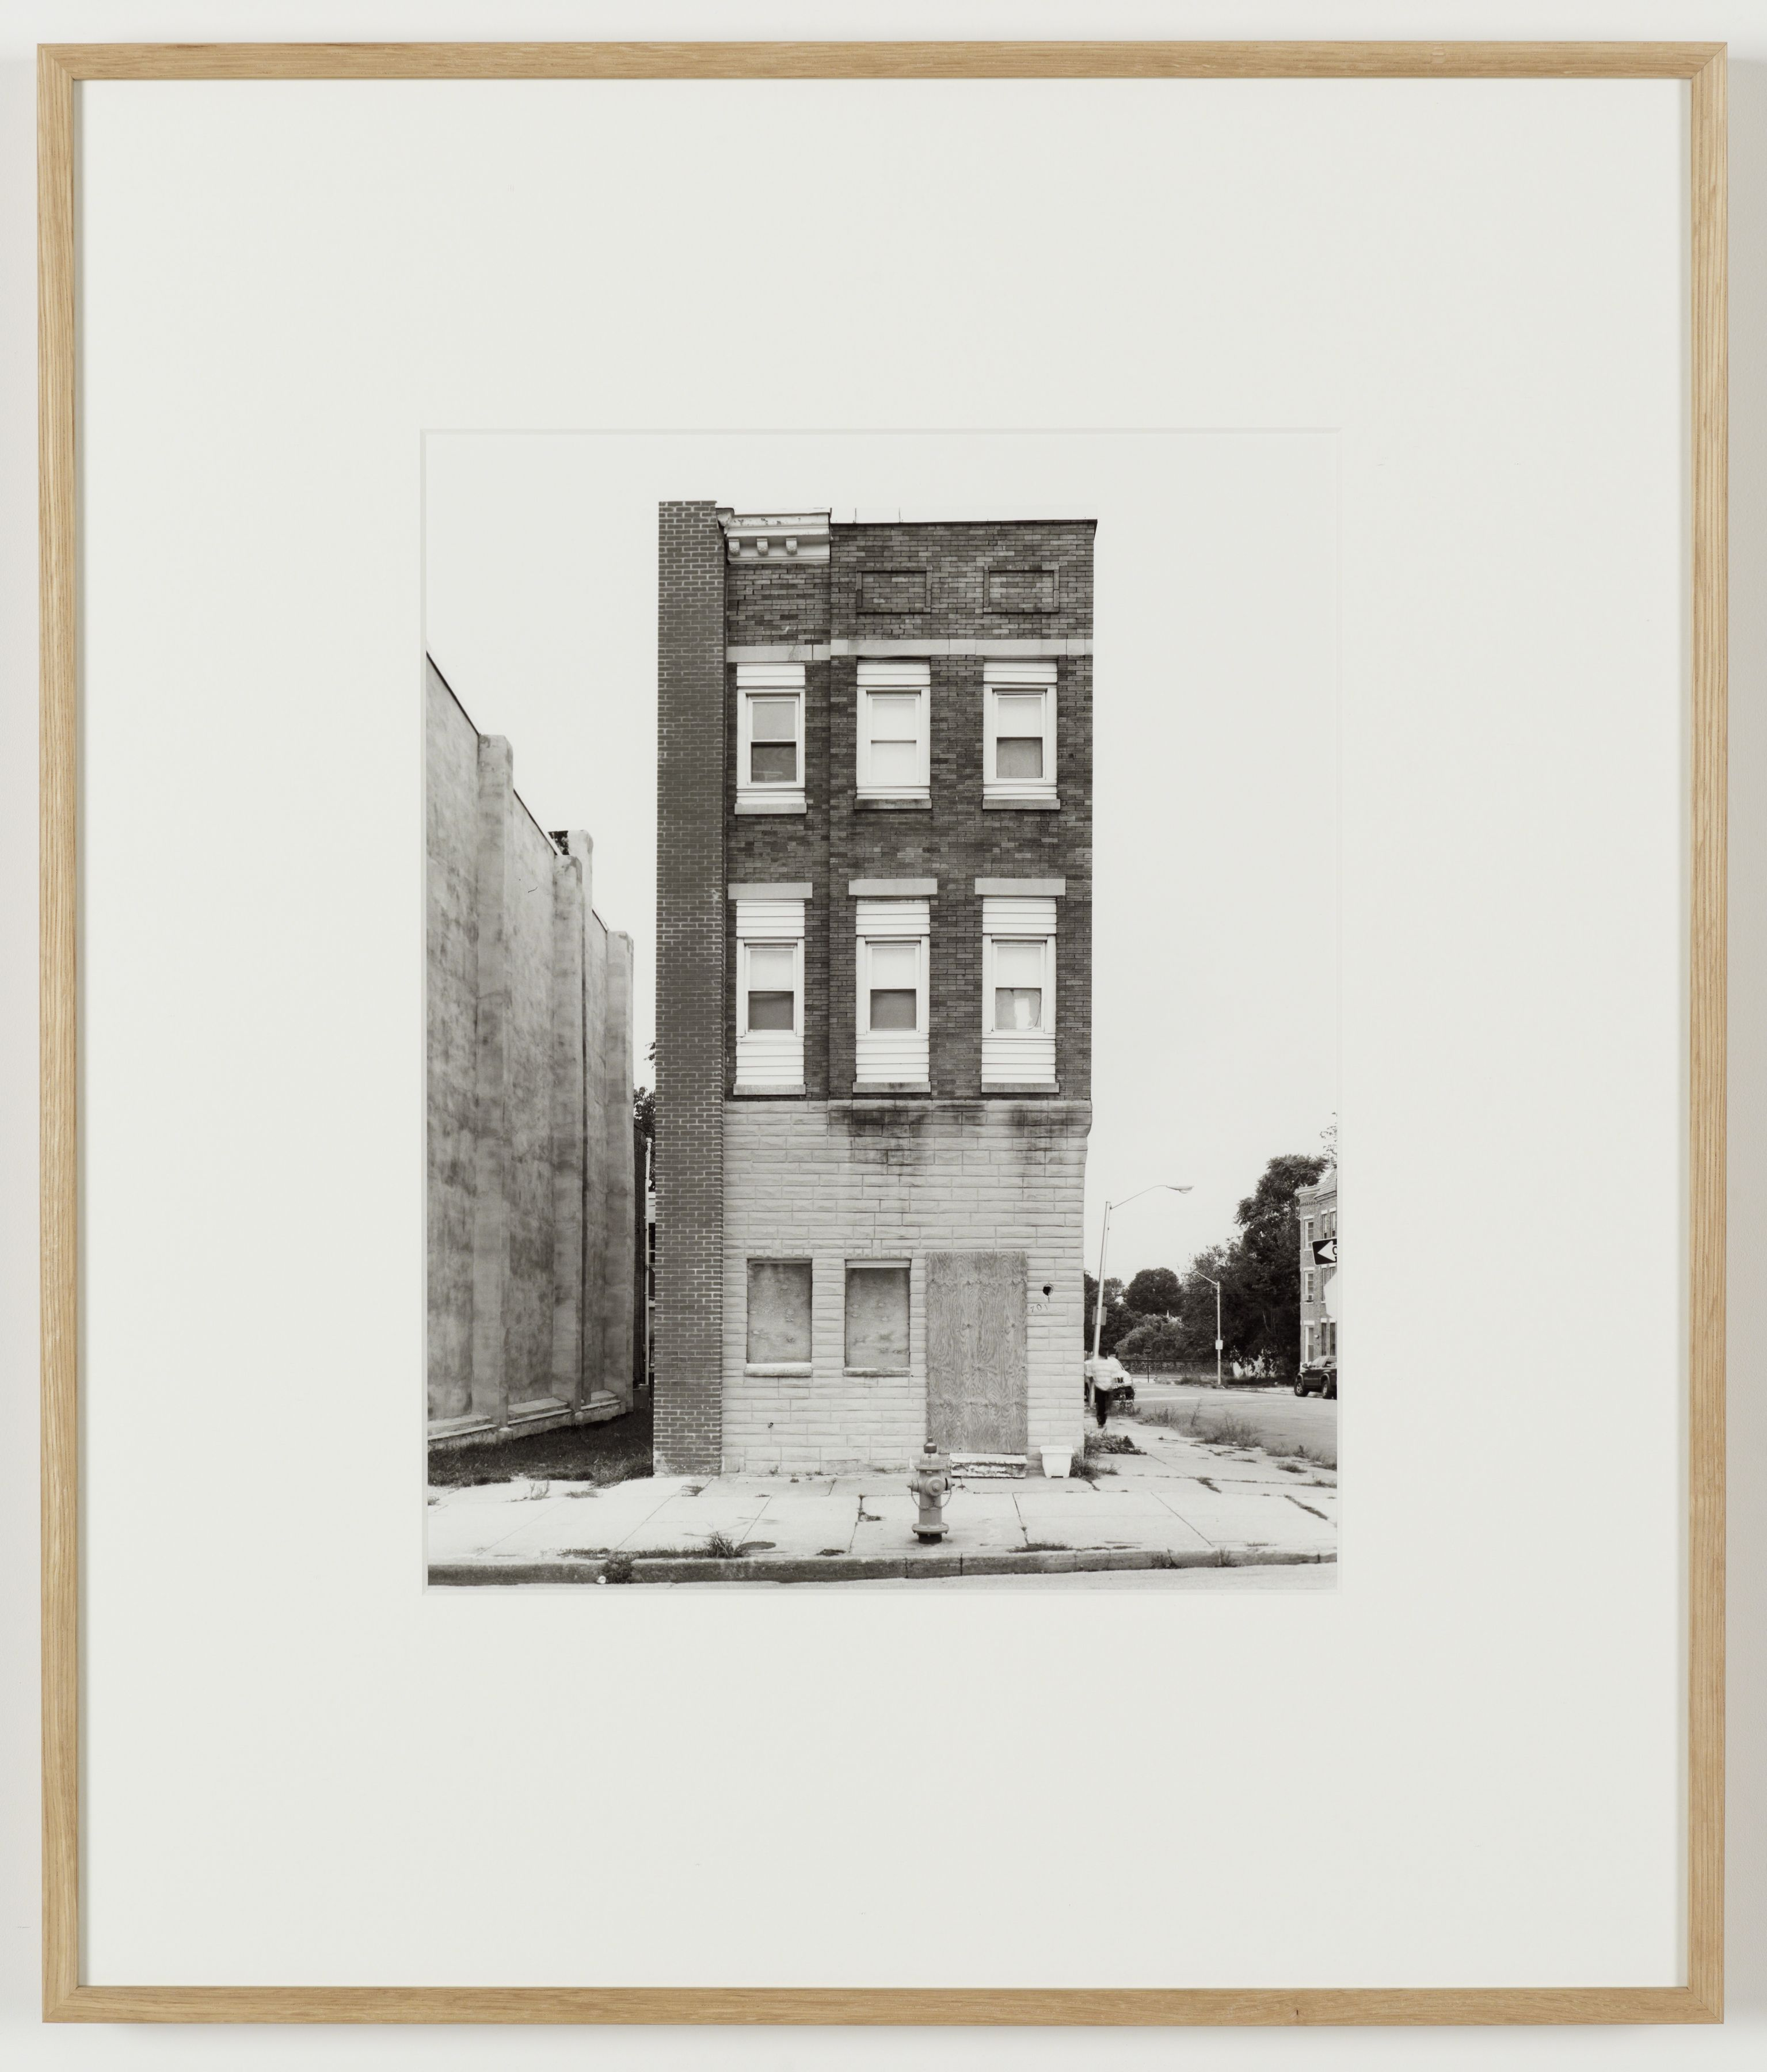 Joachim Koester, Some Boarded Up Houses, Baltimore #1, 2009-2013, Silver gelatin print, 27 x  22 5/8 inches (68.6 x 57.5 cm)